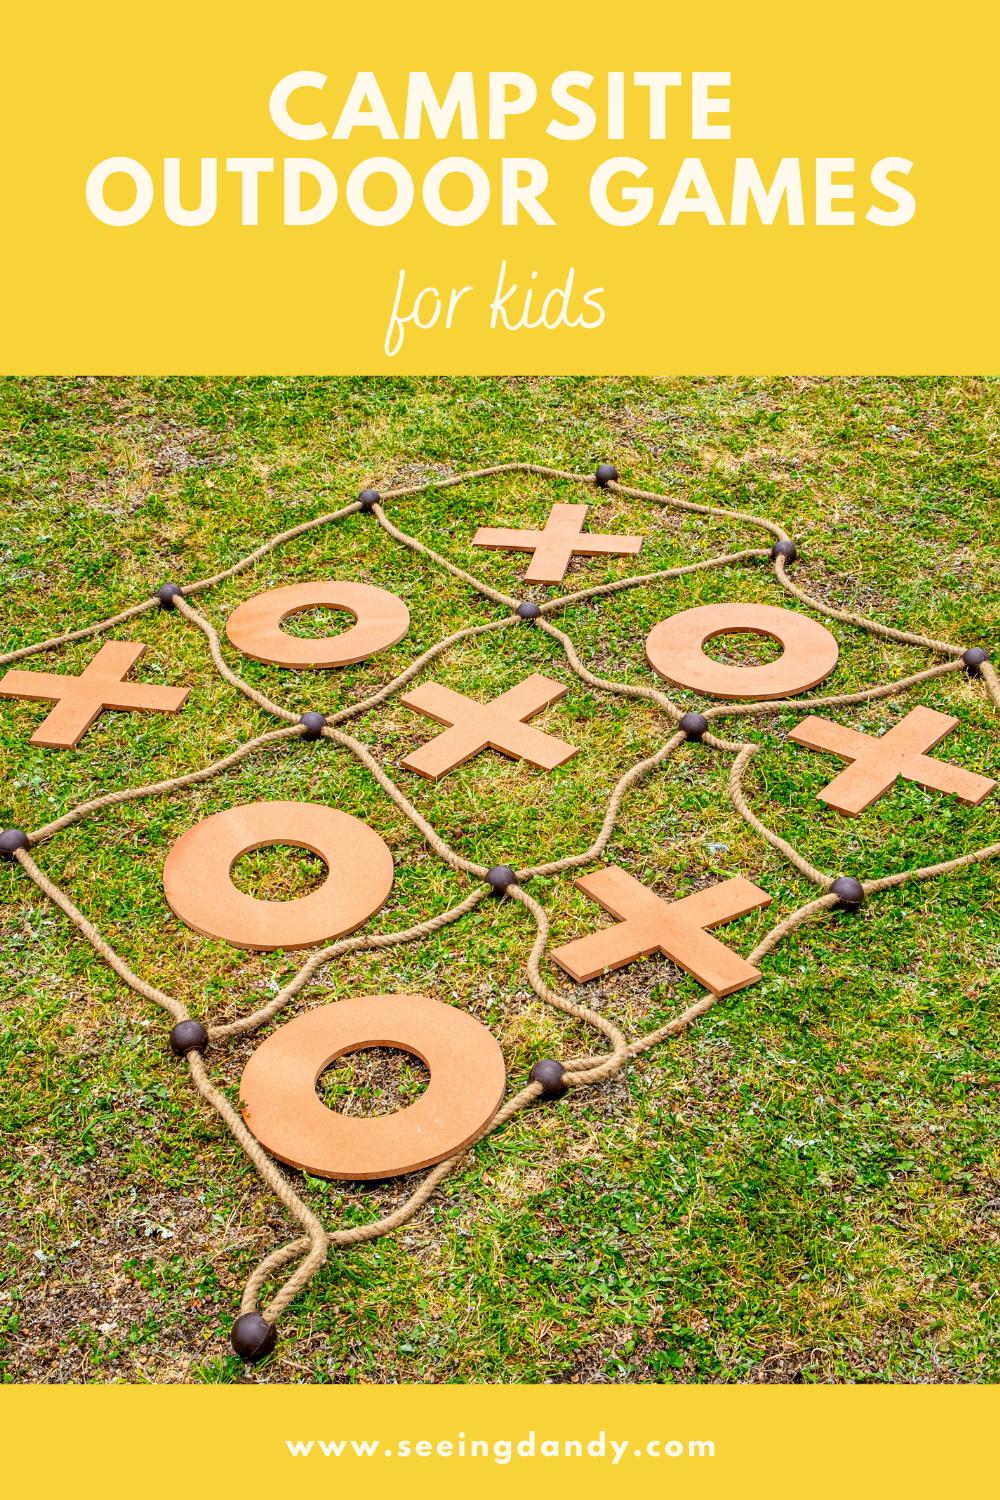 campsite outdoor games for kids, tic tac toe rope yard game, oversized tic tac toe, camping, family travel, family fun, family activities, lawn games